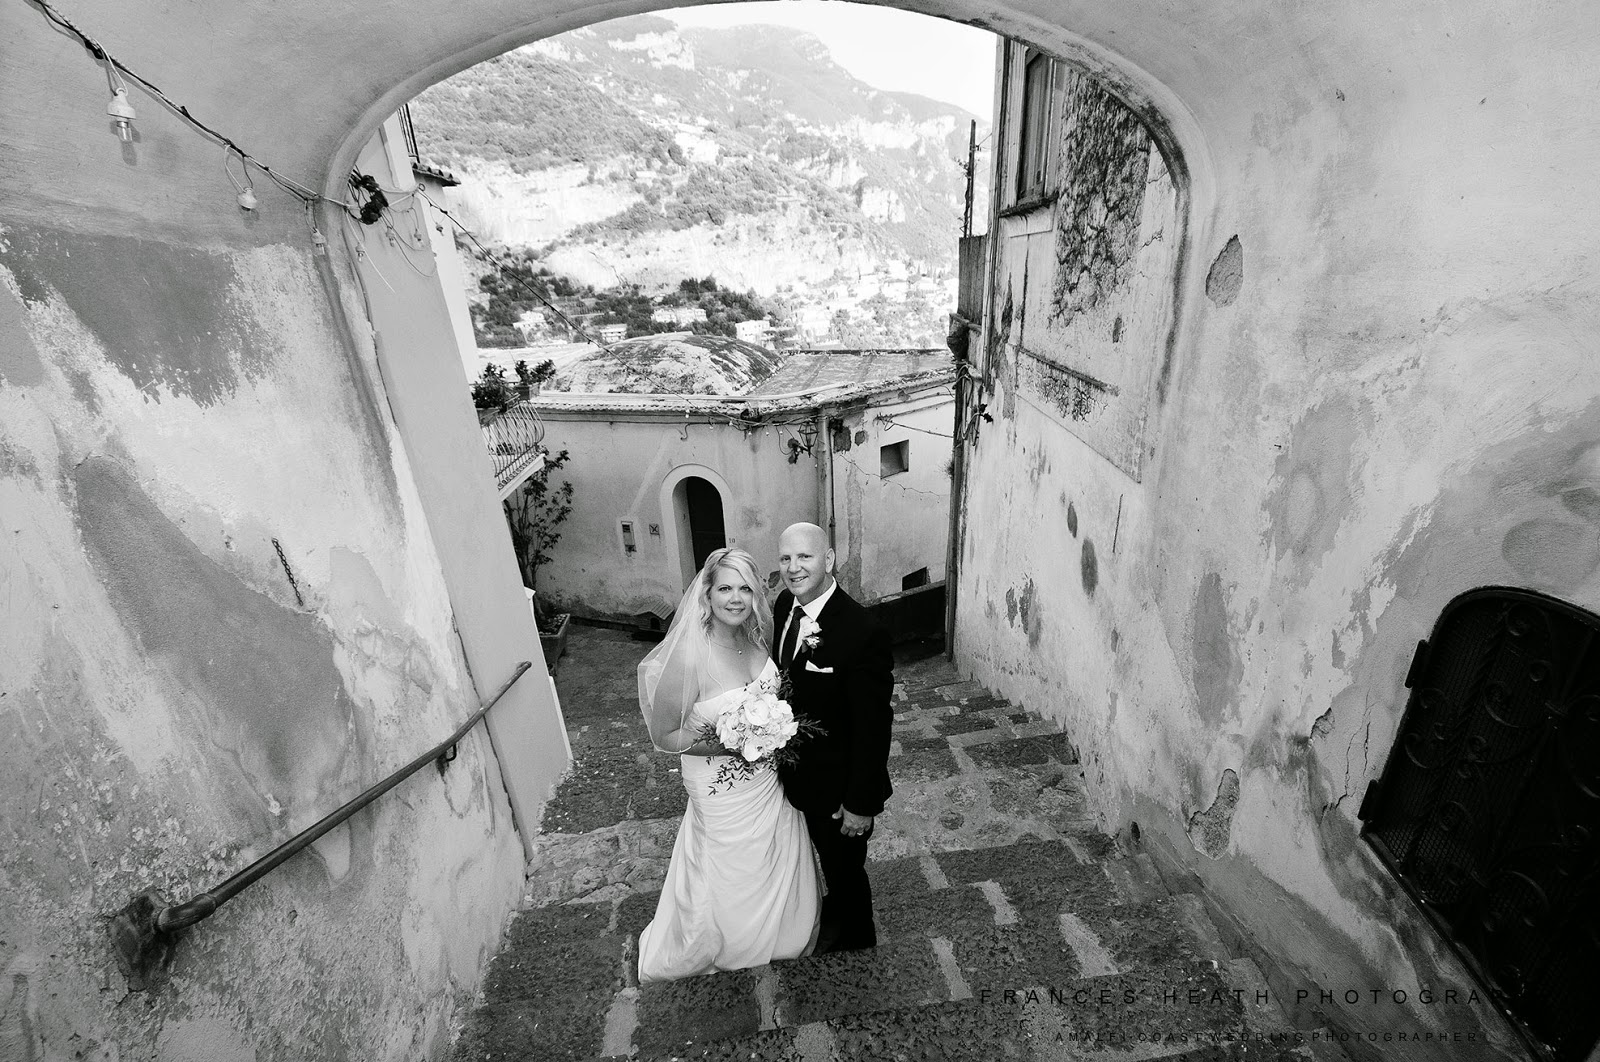 Elopement wedding Positano Amalfi Coast